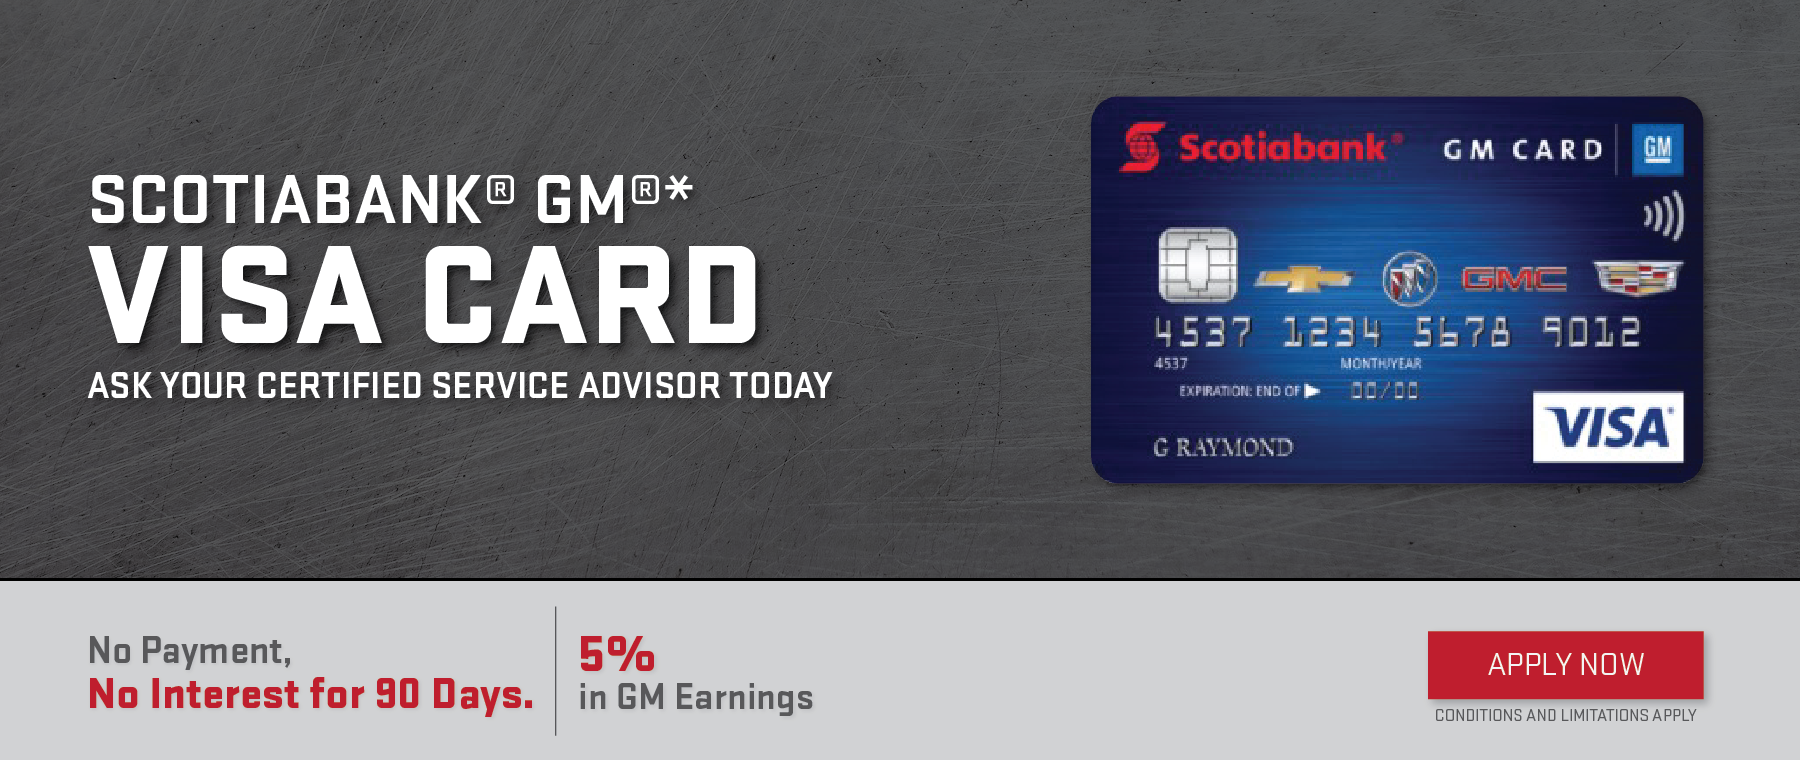 Scotiabank GM Visa Card3